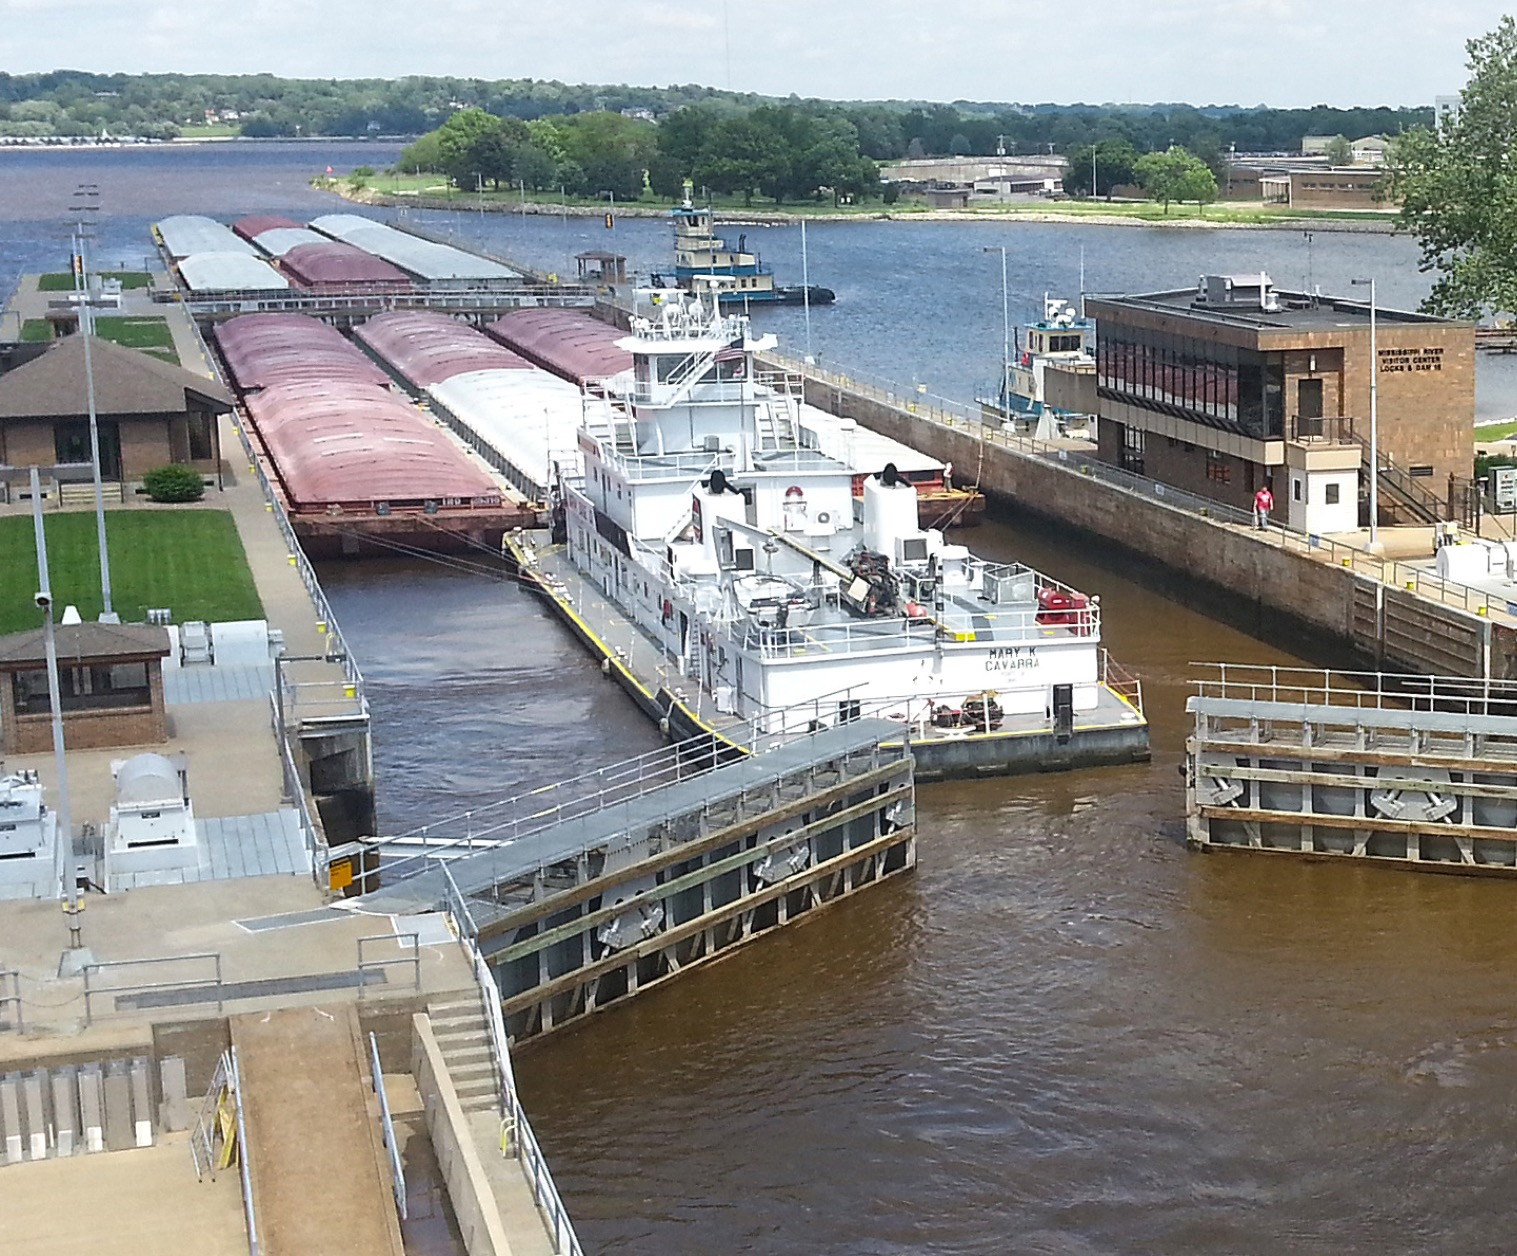 List of locks and dams of the Upper Mississippi River